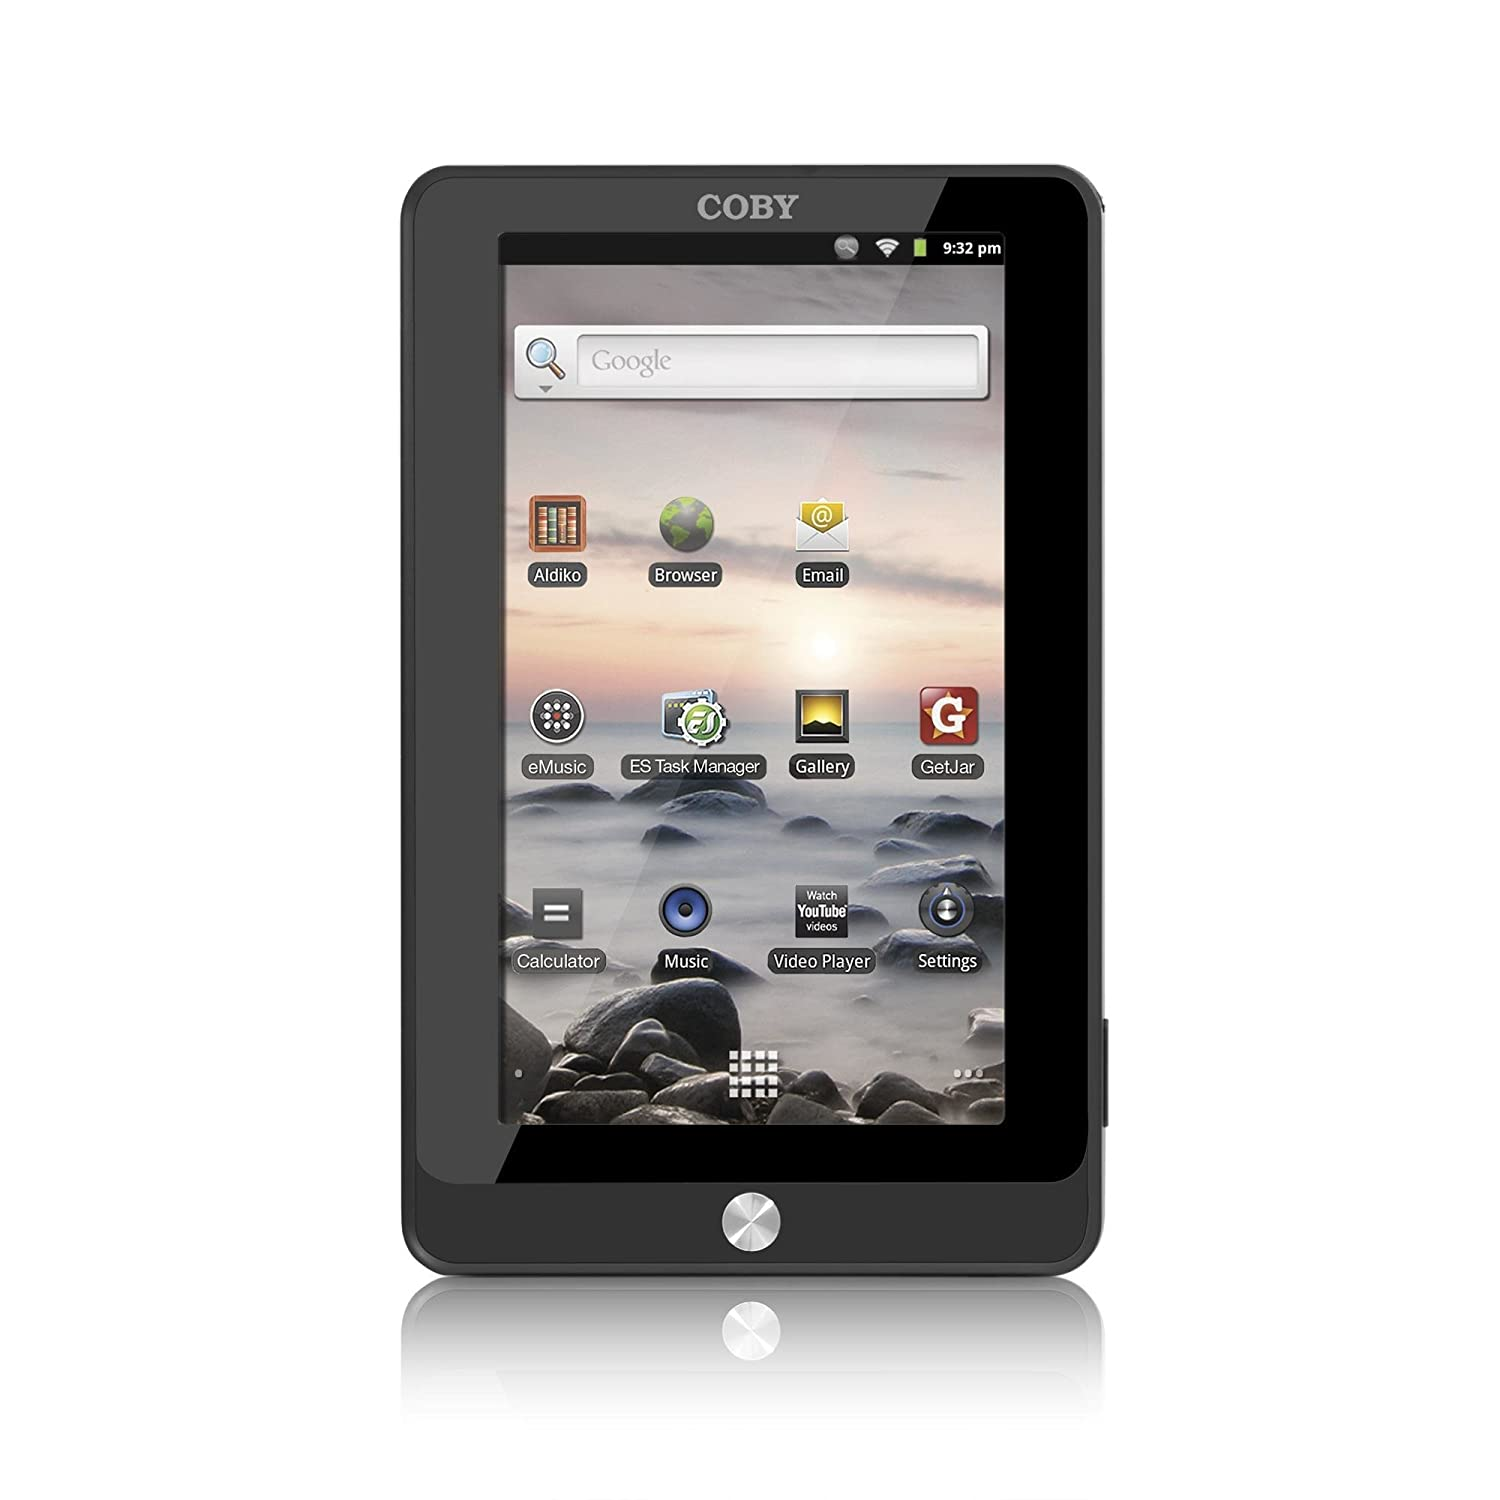 Amazon.com : Coby Kyros MID7015 7-Inch Android 2.3 Internet Touchscreen  Tablet PC with WiFi, 0.72 GHz, 4GB Flash Removable Memory : Tablet  Computers ...